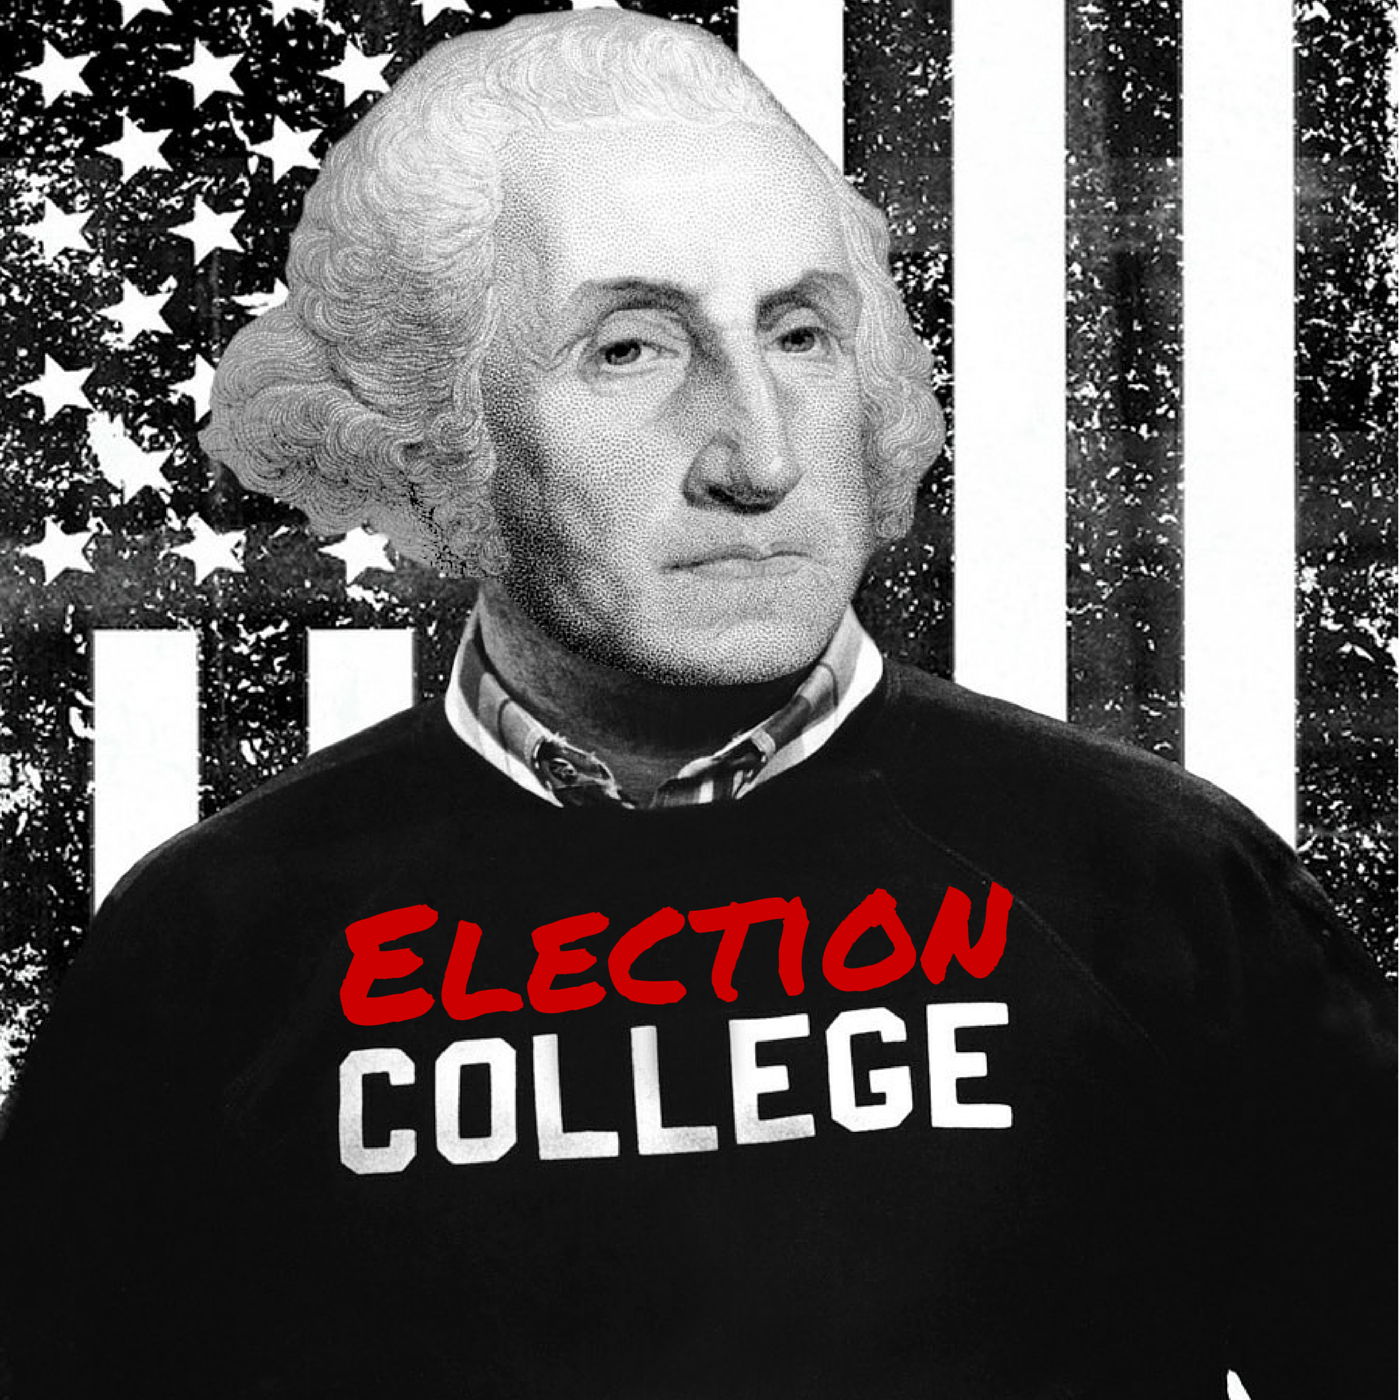 How Senators Are Elected - The 17th Amendment | Episode #159 | Election College: United States Presidential Election History